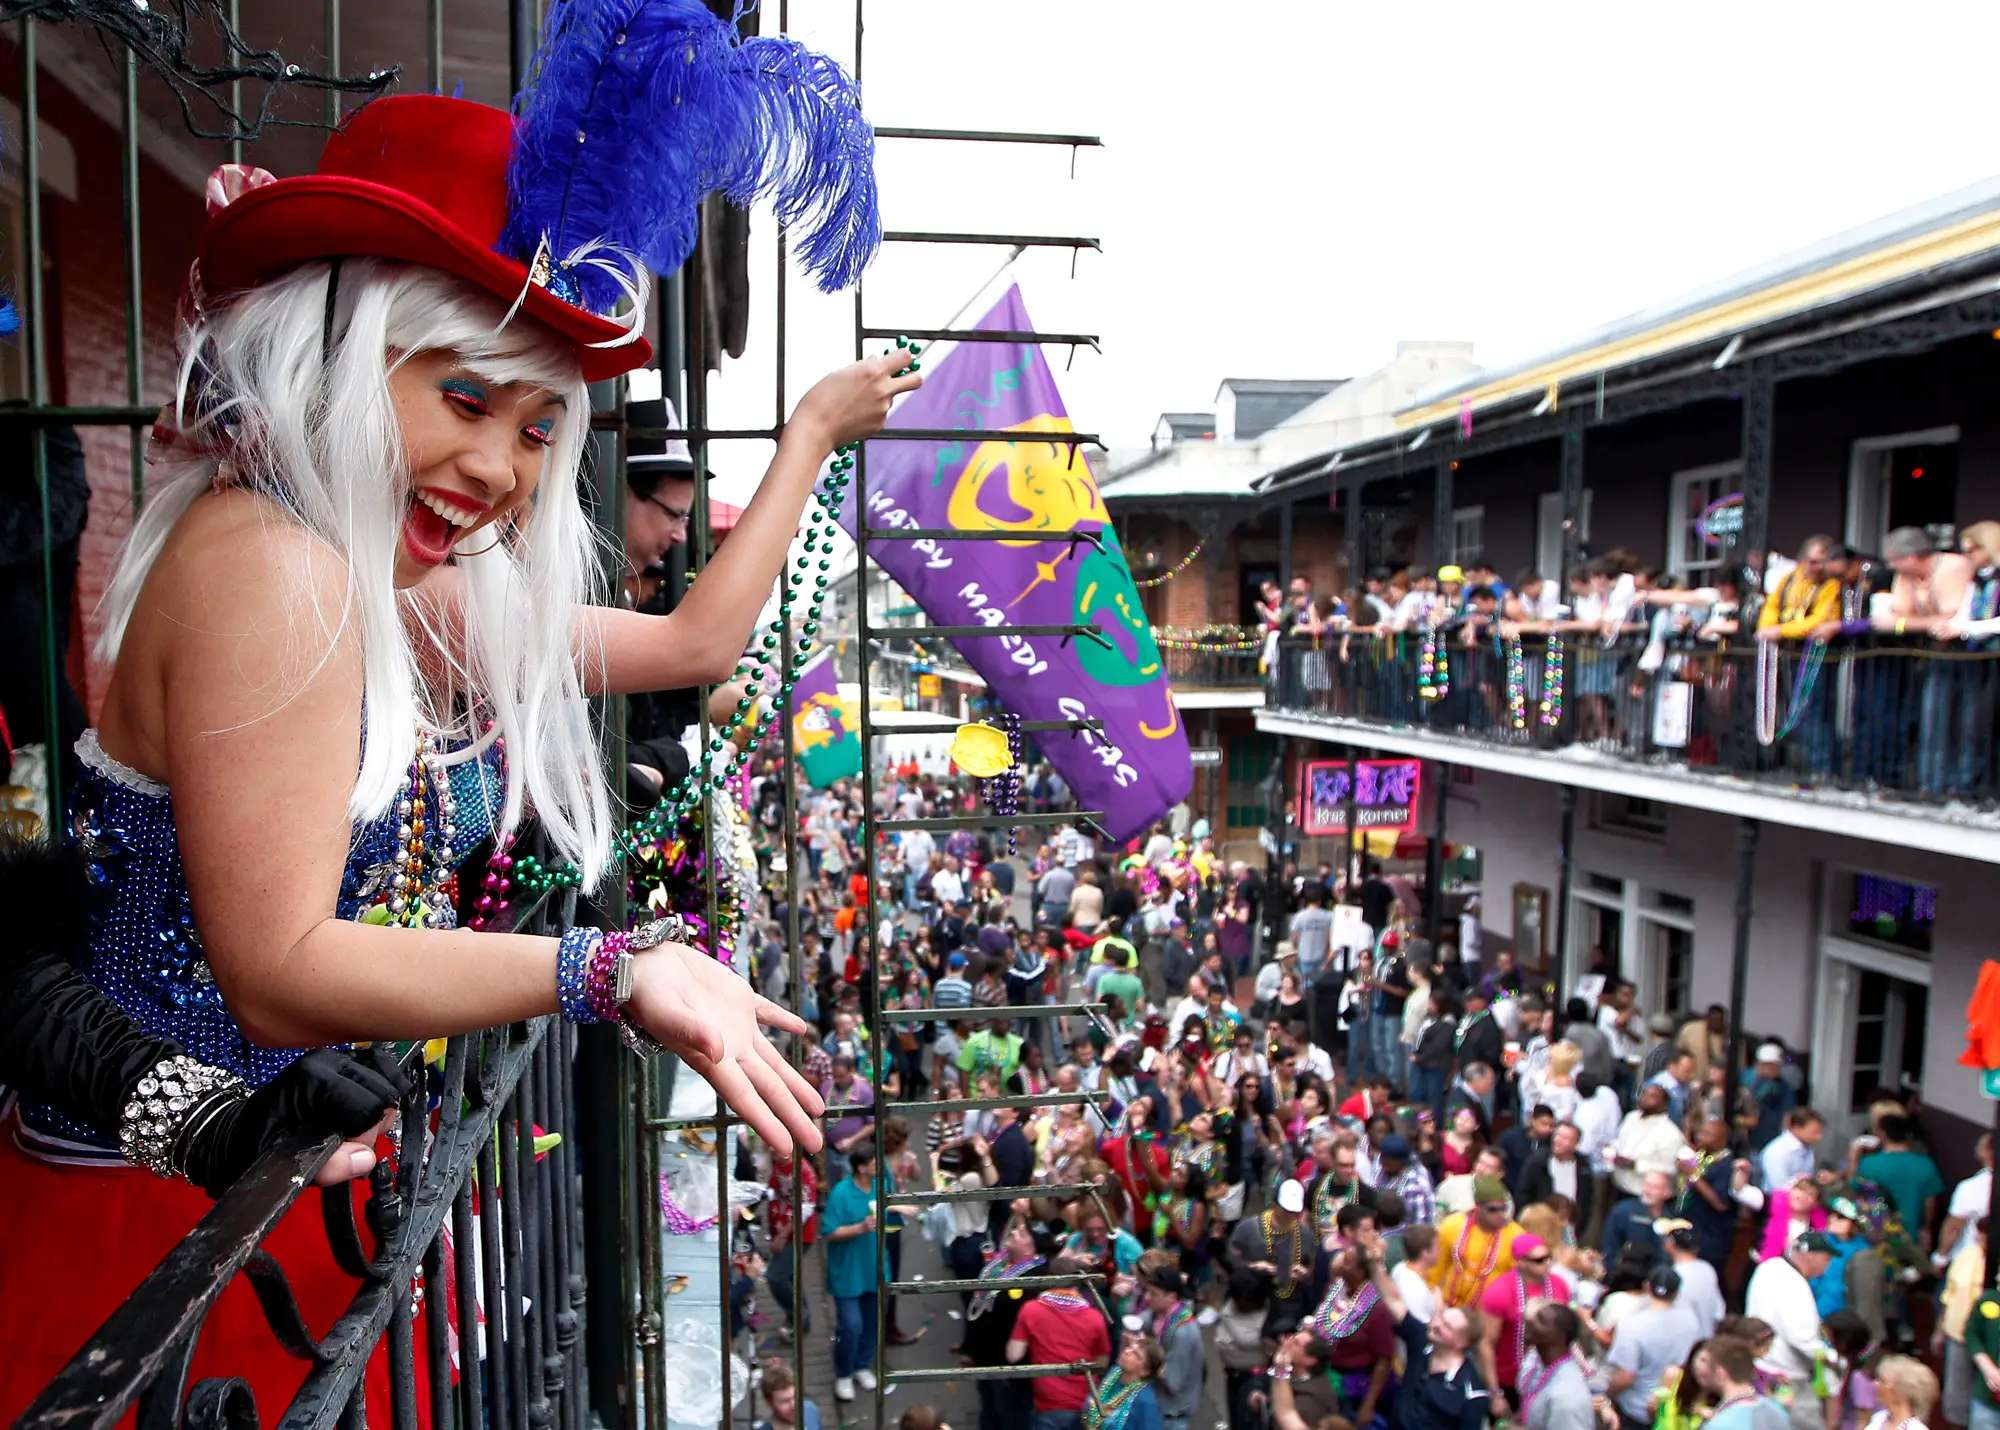 Catch some colored beads at a Mardi Gras parade in New Orleans, Louisiana.